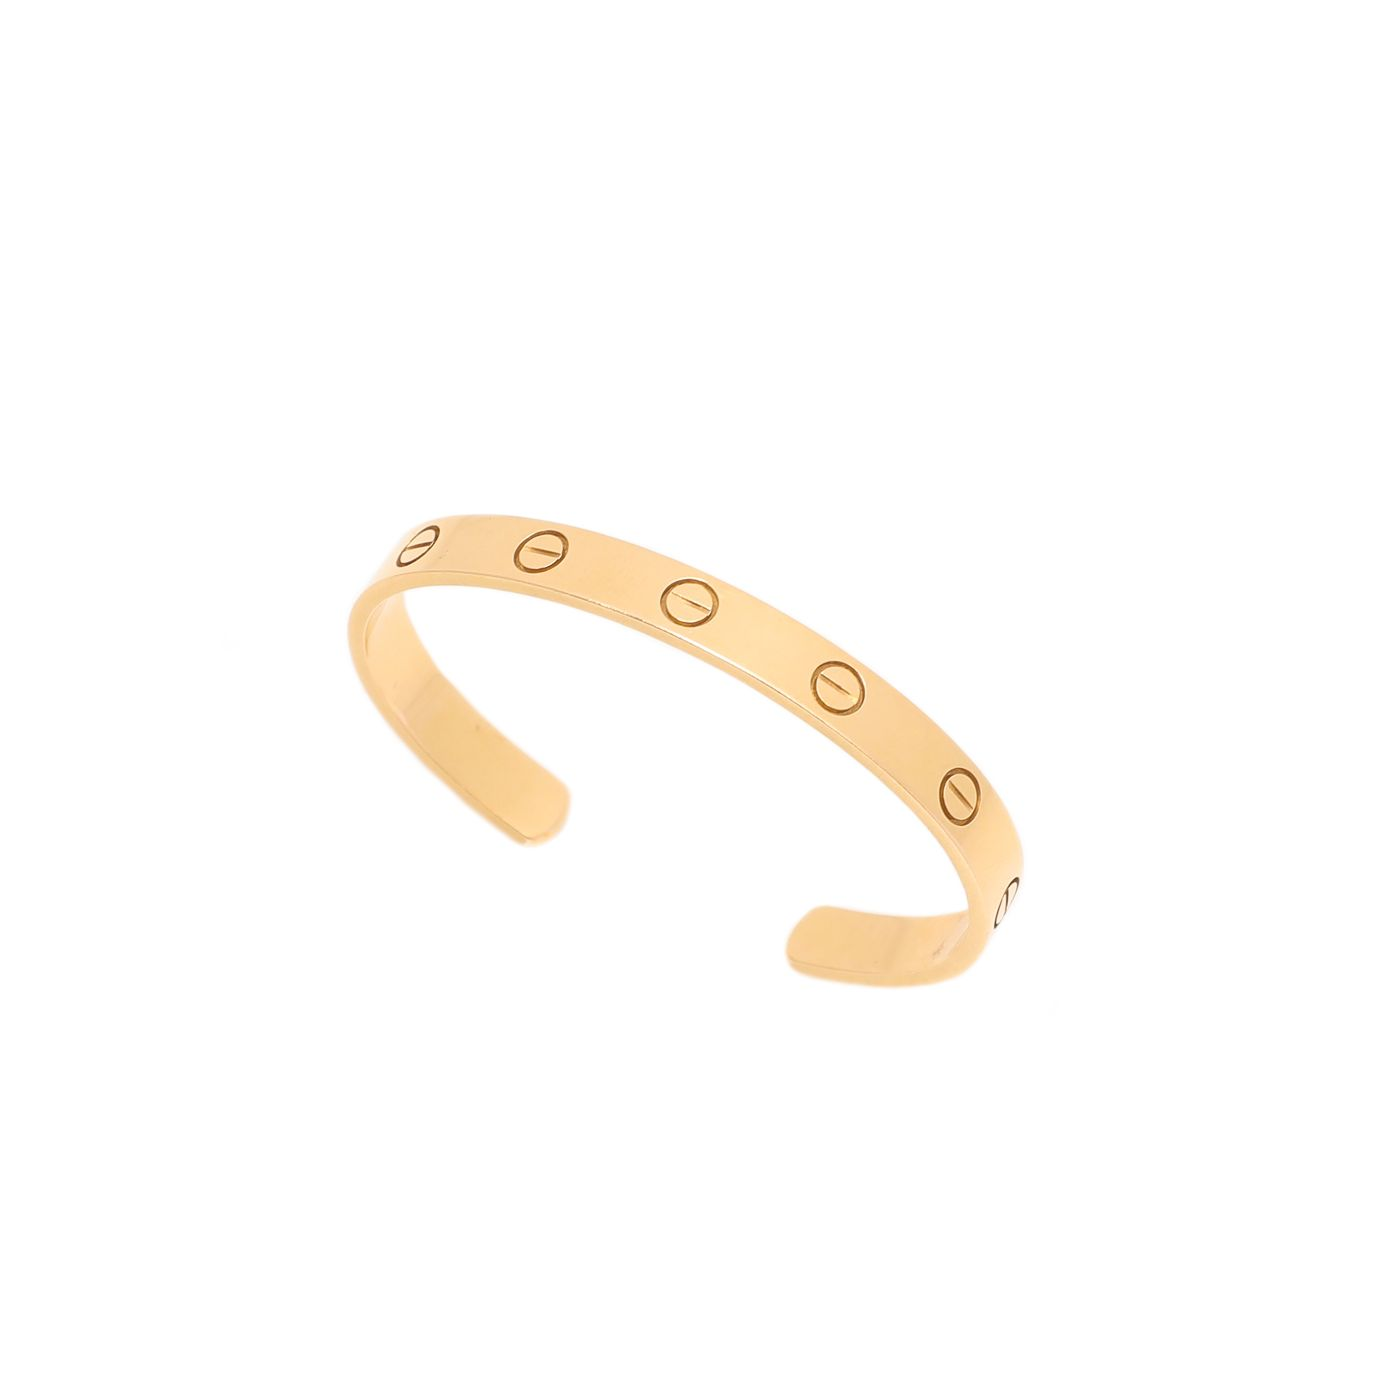 Cartier 18K Yellow Gold Love Open Bracelet 16